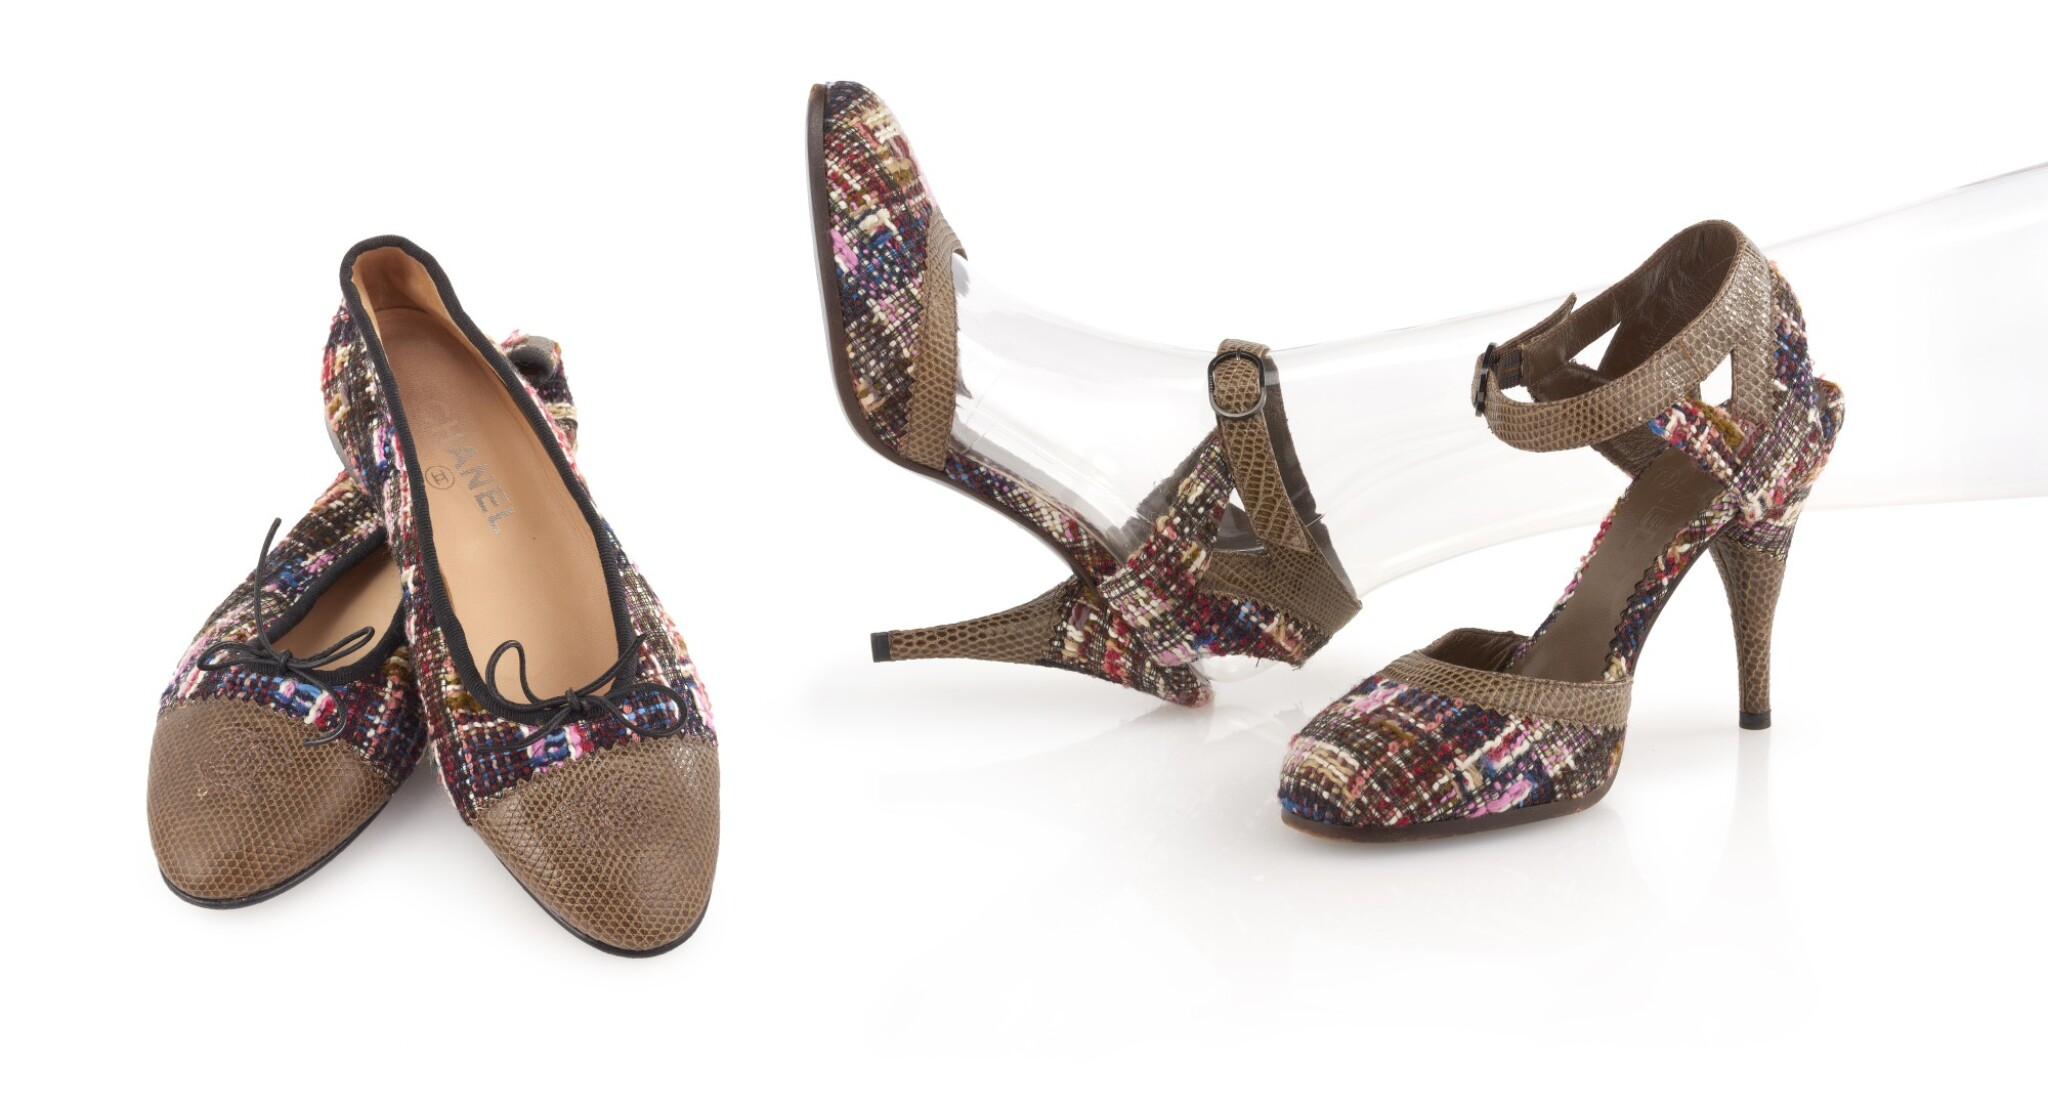 TWO PAIRS OF MULTICOLORED TWEED AND GREEN LEATHER SHOES, CHANEL